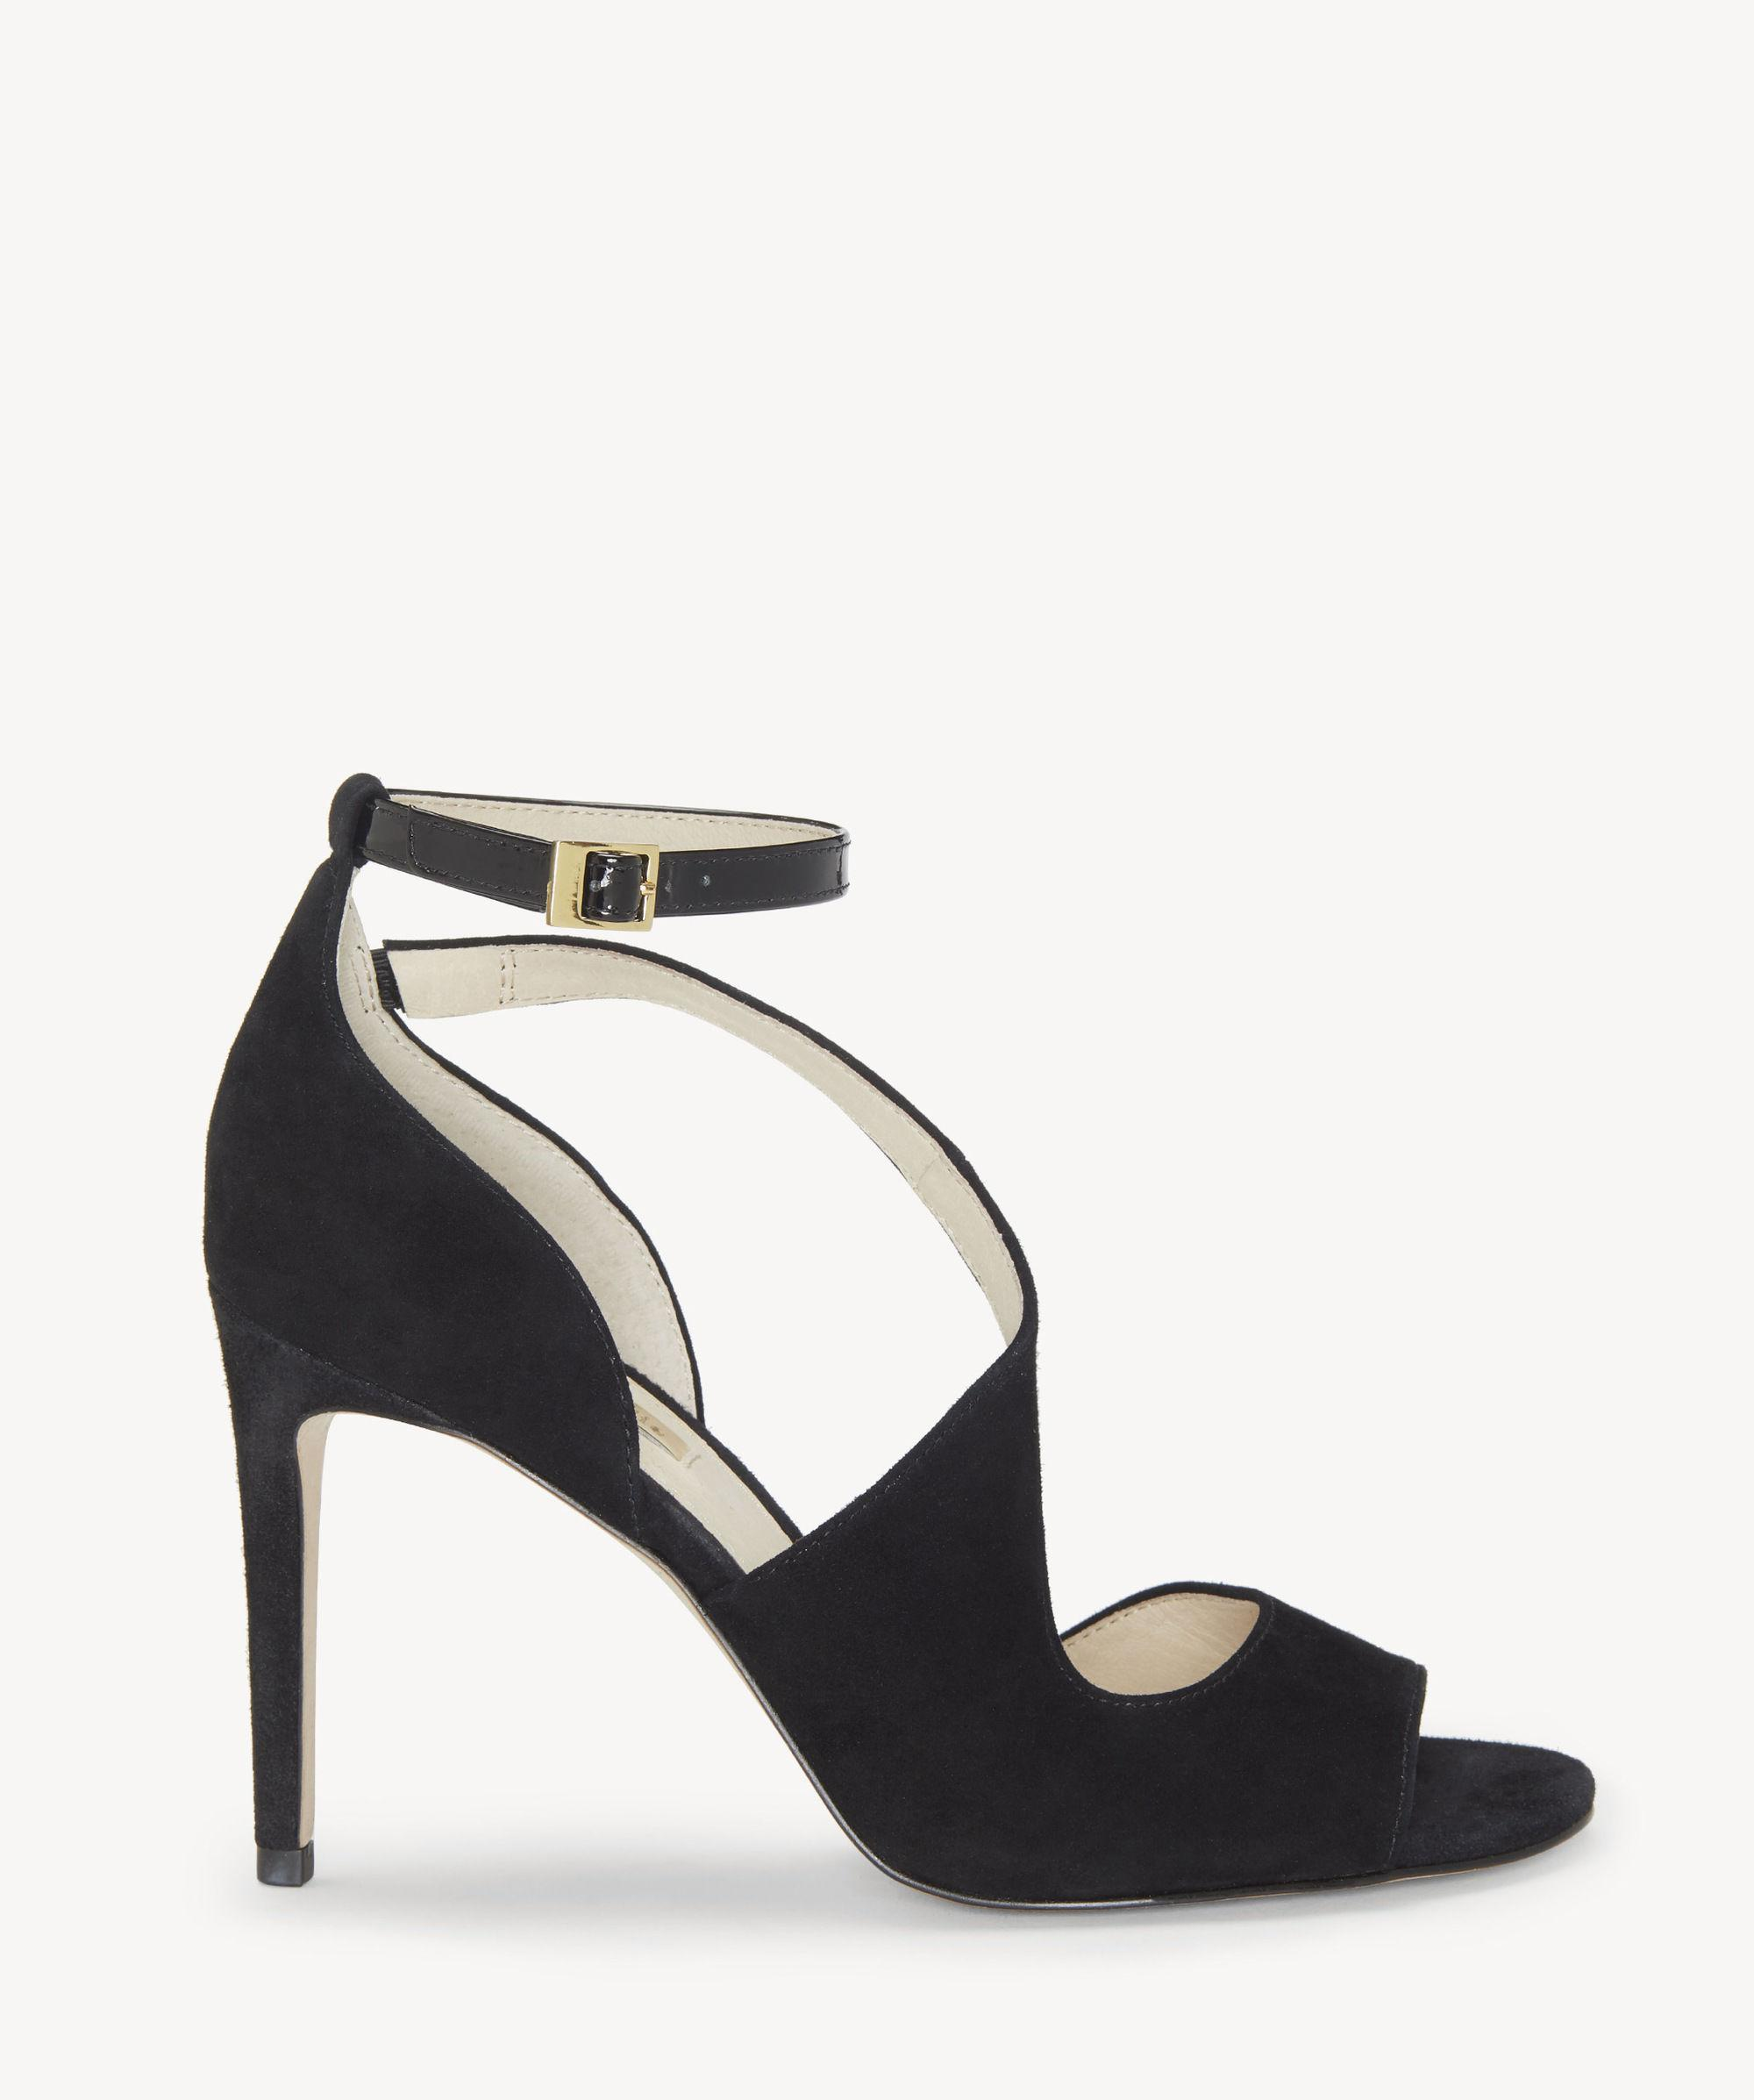 bacc033e9ae Lyst - Vince Camuto Louise Et Cie Kalimac – Winding-strap Sandal in Black -  Save 47%